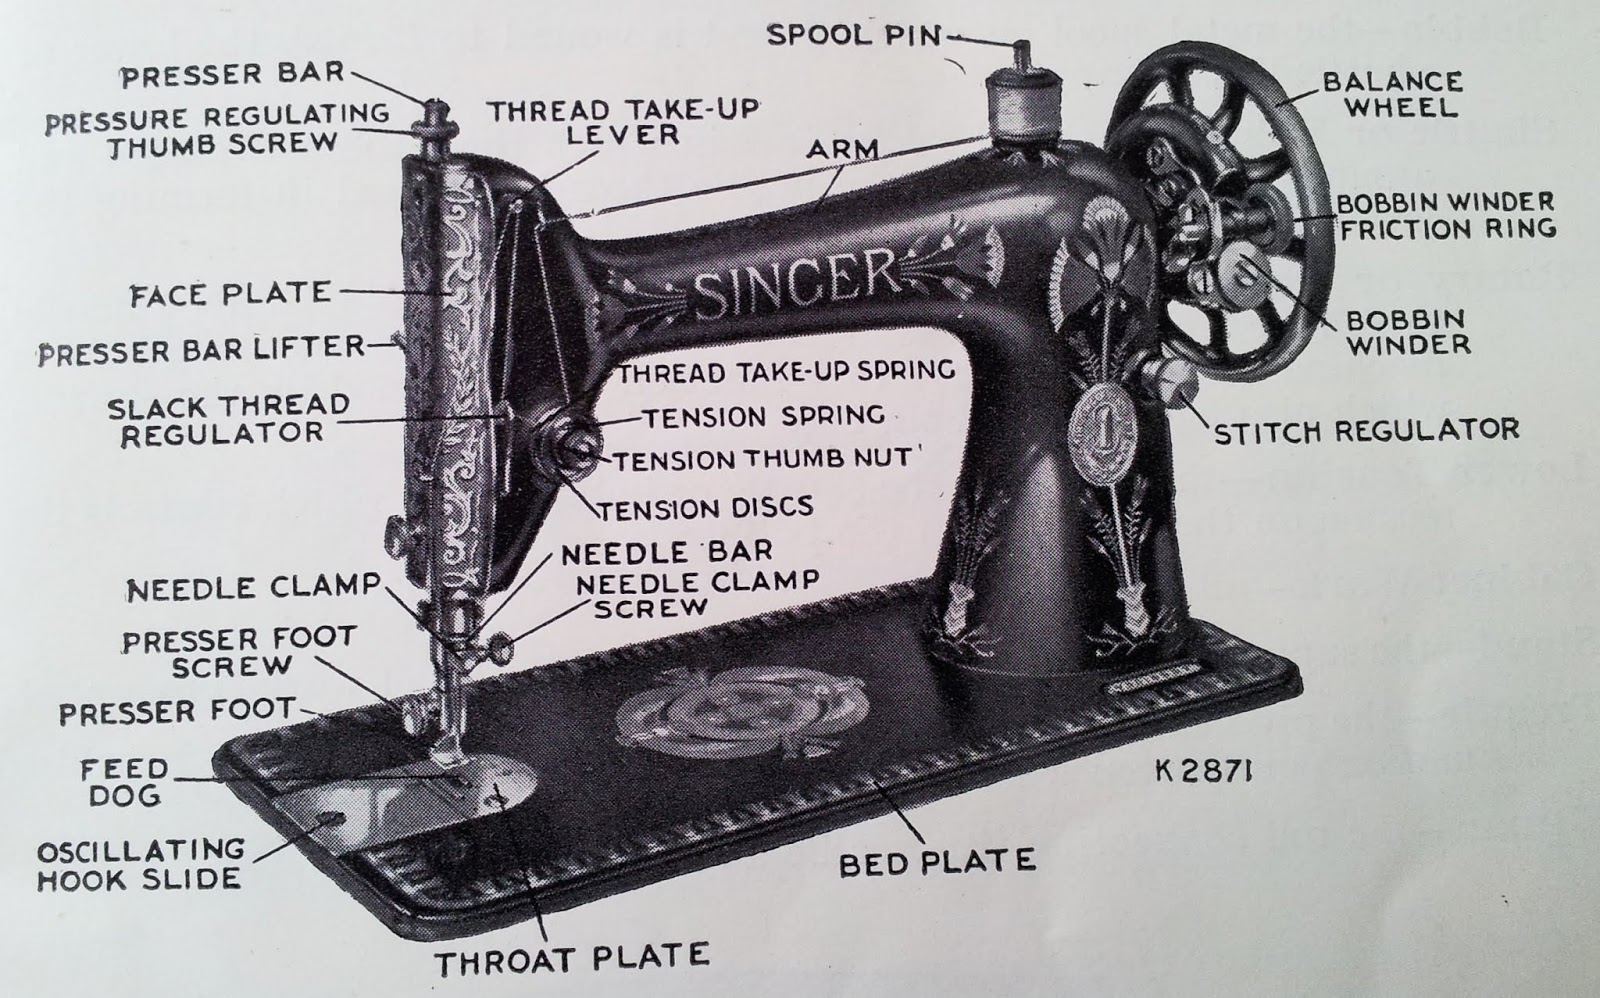 still stitching vintage sewing machines diagram. Black Bedroom Furniture Sets. Home Design Ideas